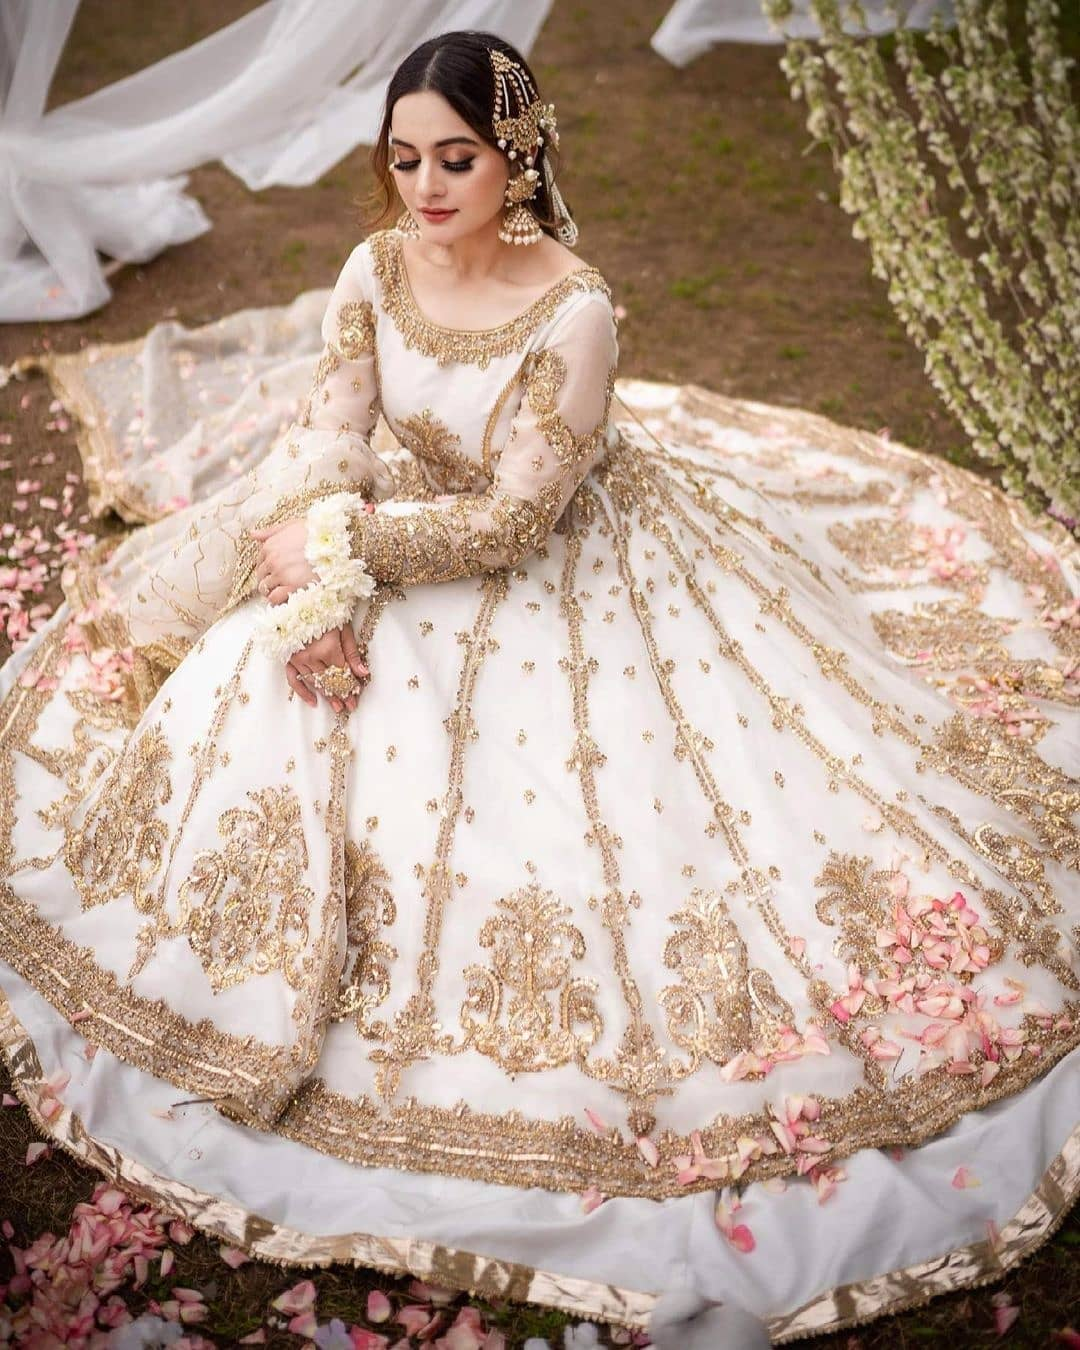 Well… it's been so long to see Aiman Khan showing up for any of the projects coming her way specifically after her marriage and birth of Amal. However, she has finally made a comeback with a mesmerizing photoshoot that will leave you enchanted. She flaunts the grace with such a perfection that makes one fail to keep eyes away from her clicks. We know that Aiman is an absolutely fantastic actress and she knows the way to gain the attention of her fans as well. This time, her photoshoot has turned on the game. Check out these clicks and make your day!  Aiman Khan Looks Drop-Dead Gorgeous in Her Latest Photoshoot!  It is not up to the words only, Aiman is actually looking drop-dead gorgeous in her latest photoshoot. She has donned a luxurious fancy bridal outfit that makes her sway in elegance. The way she is feeling comfortable in wearing it makes us have an idea that it is a perfect wear for new brides this season. Her makeover is the finest combination with the dress as it highlights her features in an alluring manner.  On the other hand, Aiman's hairdo is somewhat that from a fairytale make it a whole new love story to reveal for everyone. Her jewellery is royal yet classy that makes her stand out as a bride. Now check out these mesmerizing clicks of Aiman Khan that will leave you stunned!           The finest embellished embroidery all over the white base of this bridal outfit is a creative blend of tradition and the latest fashion trends. Moreover, Aiman's jhumkas are linking directly to the fancy work on the dress which is making it something outclass.  So, what do you think about this fantastic comeback of Aiman Khan with this classy photoshoot? Don't forget to share your valuable feedback with us!